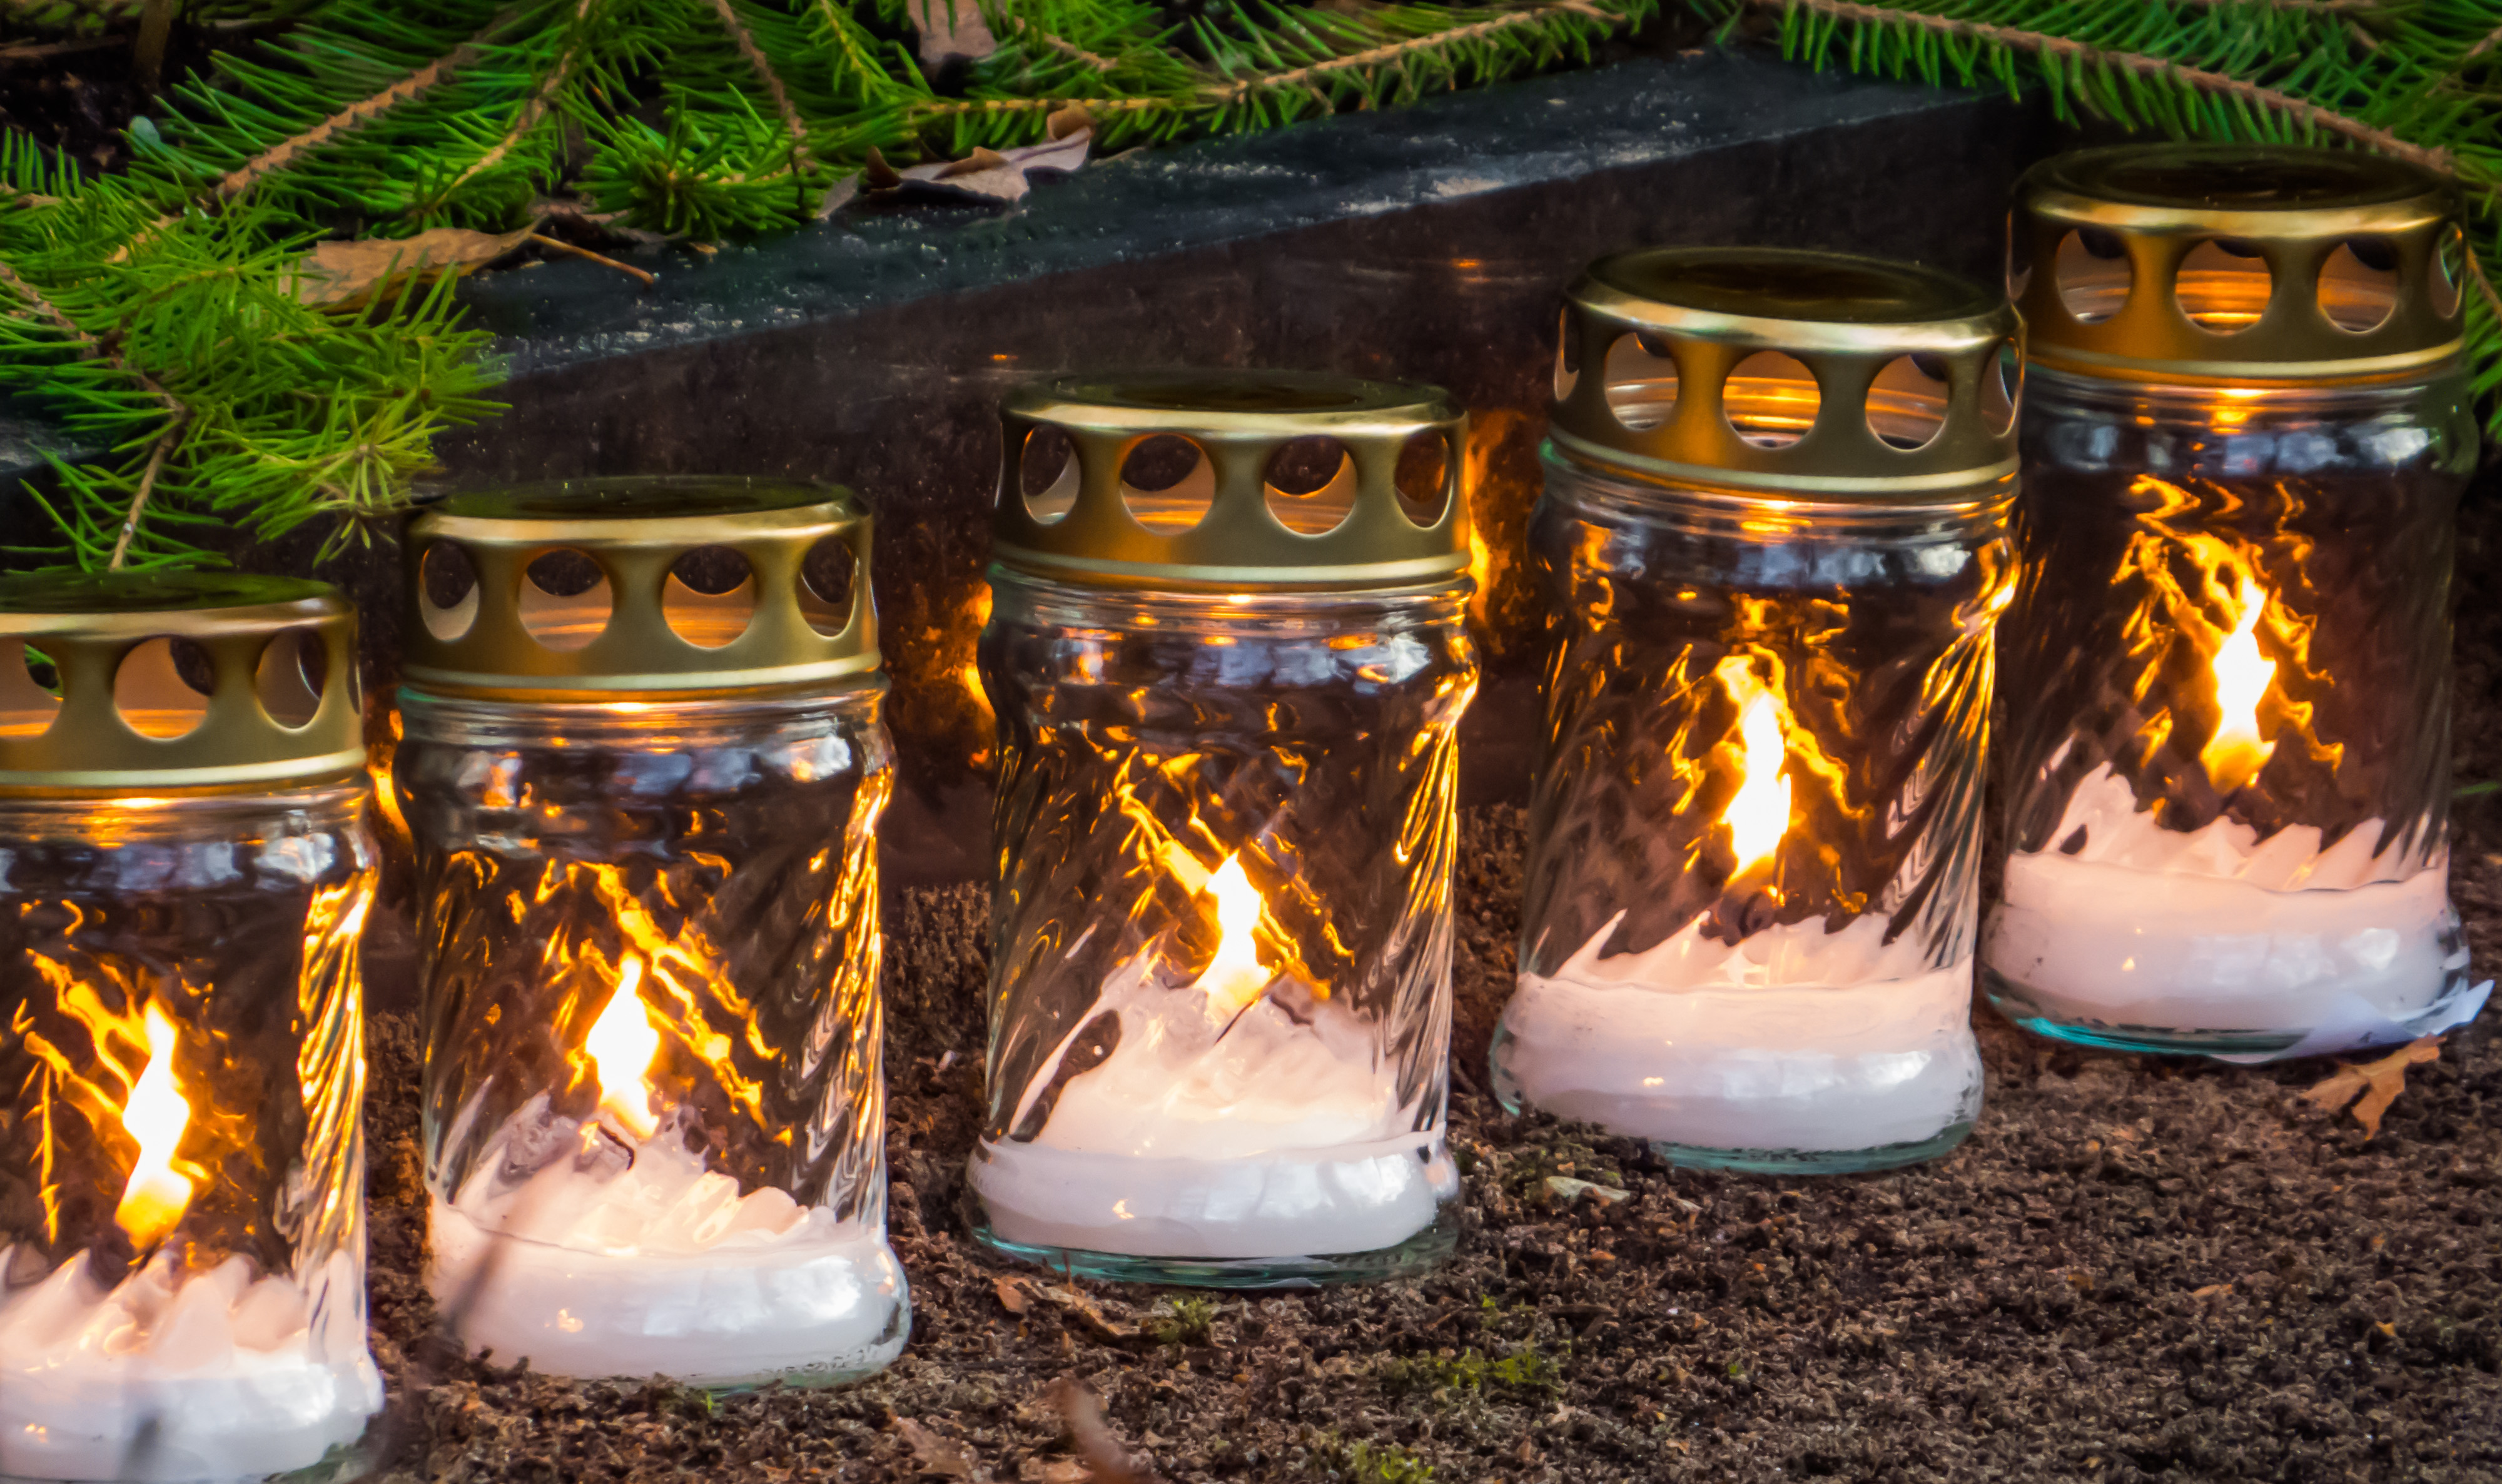 Candles, Beautiful, Candle, Fall, Gone, HQ Photo